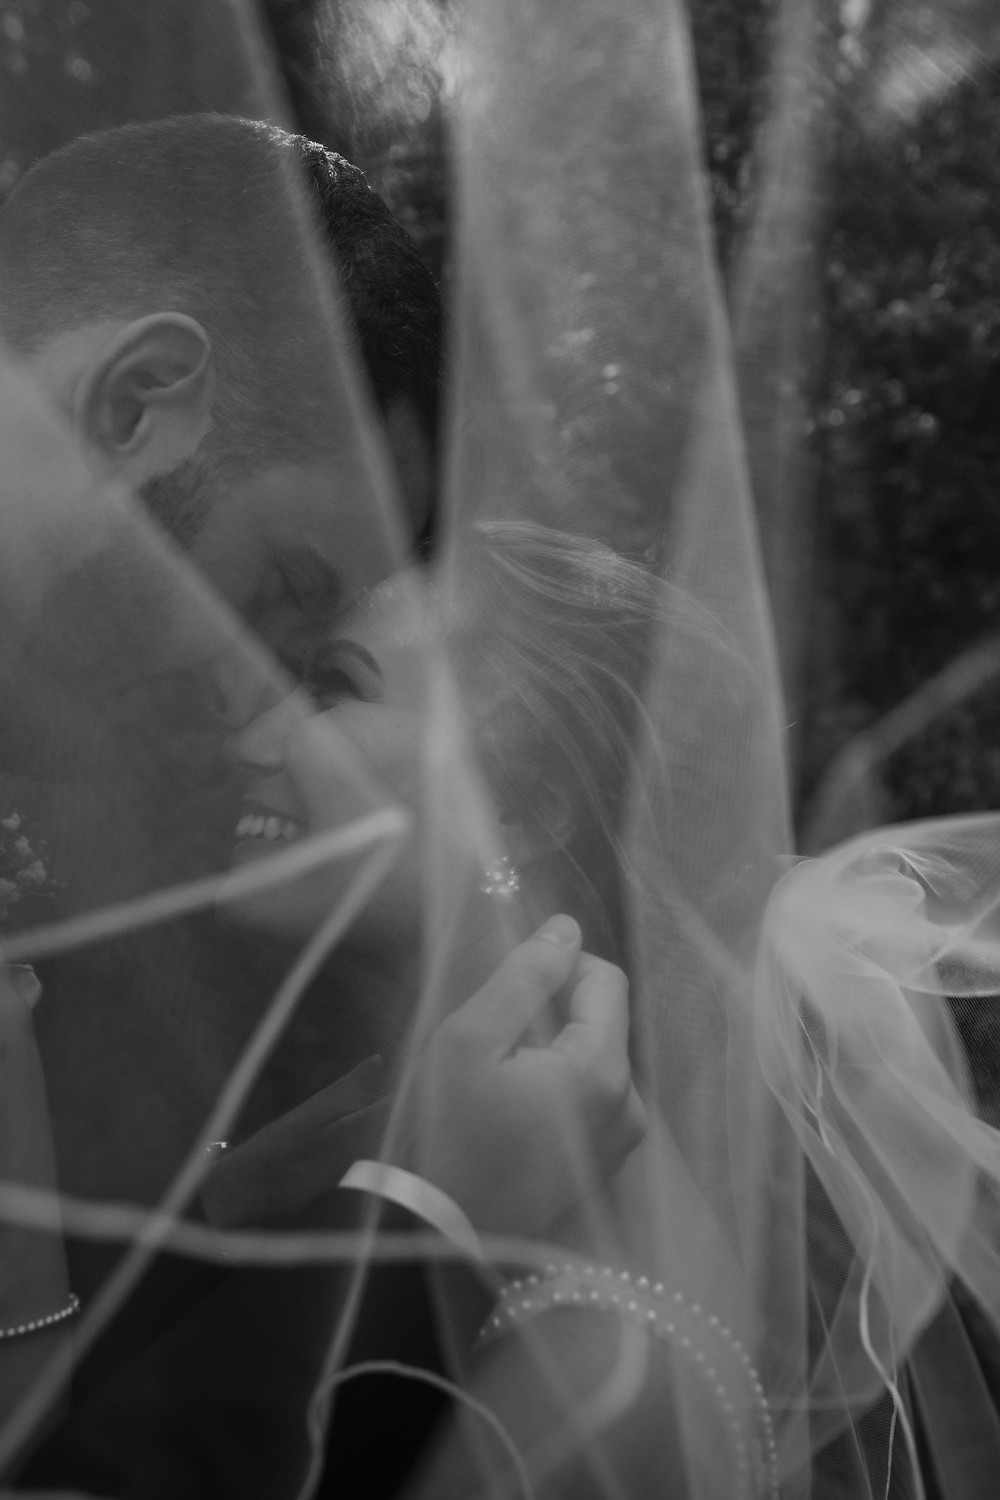 Black and white wedding day photos. Photographed by Nicole Leanne Photography.